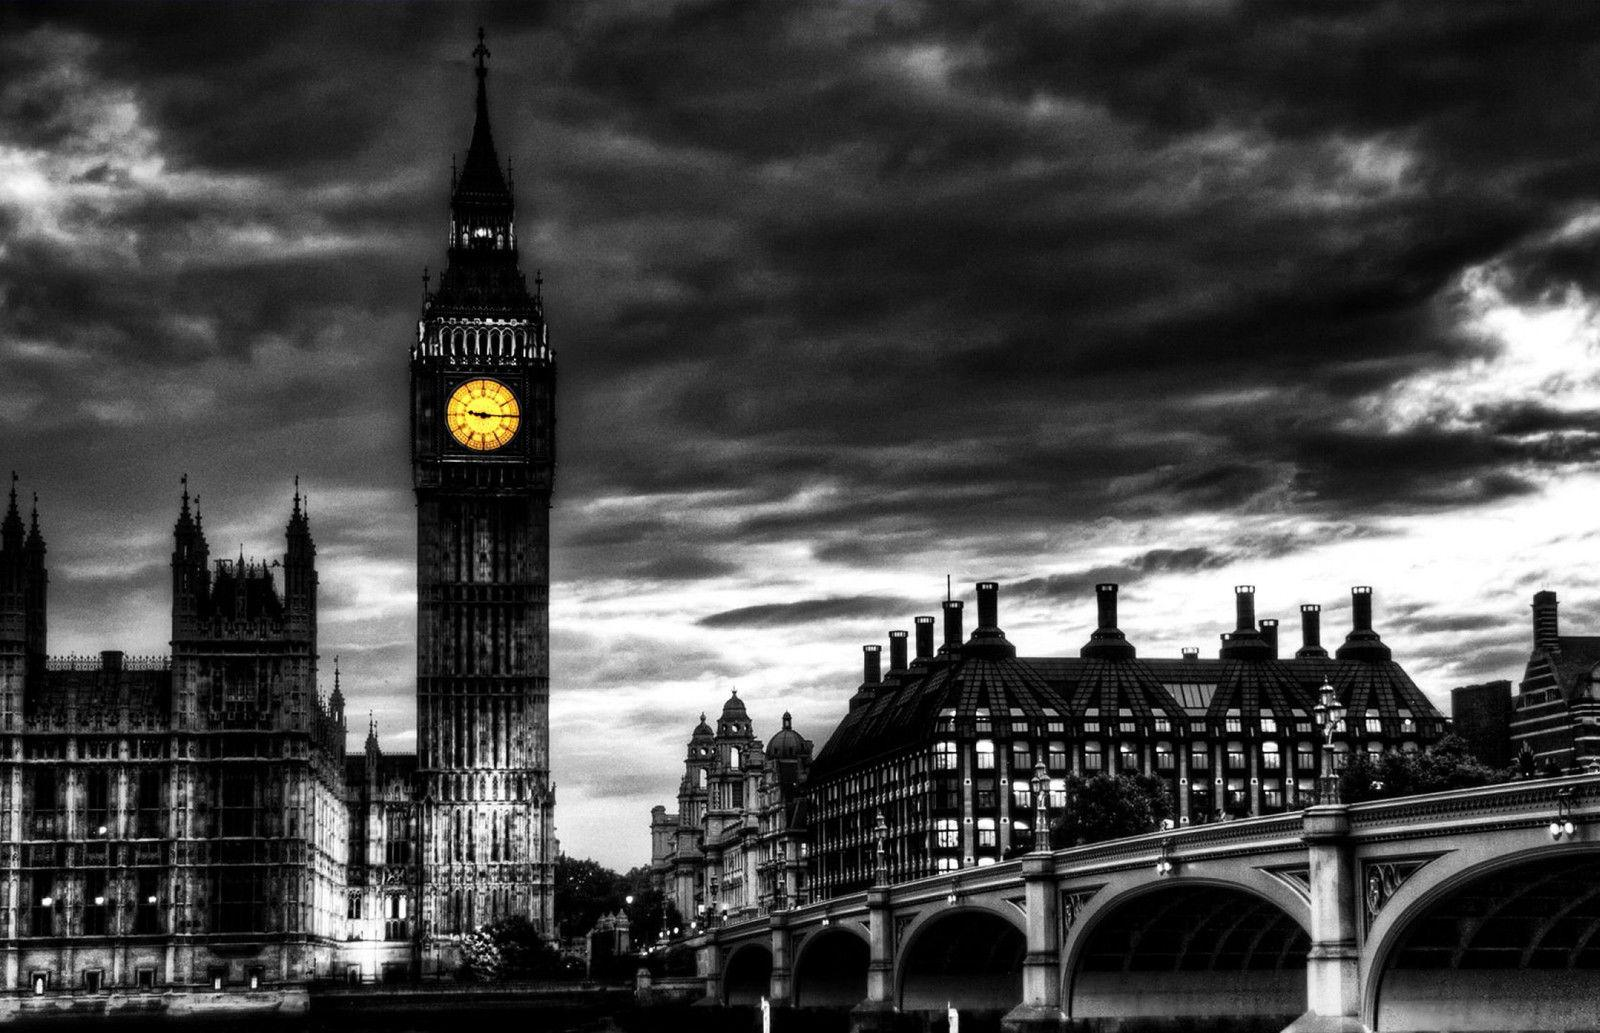 2019 black white london big ben with yellow clock face art silk print poster 24x36inch60x90cm 089 from chuy8988 10 93 dhgate com